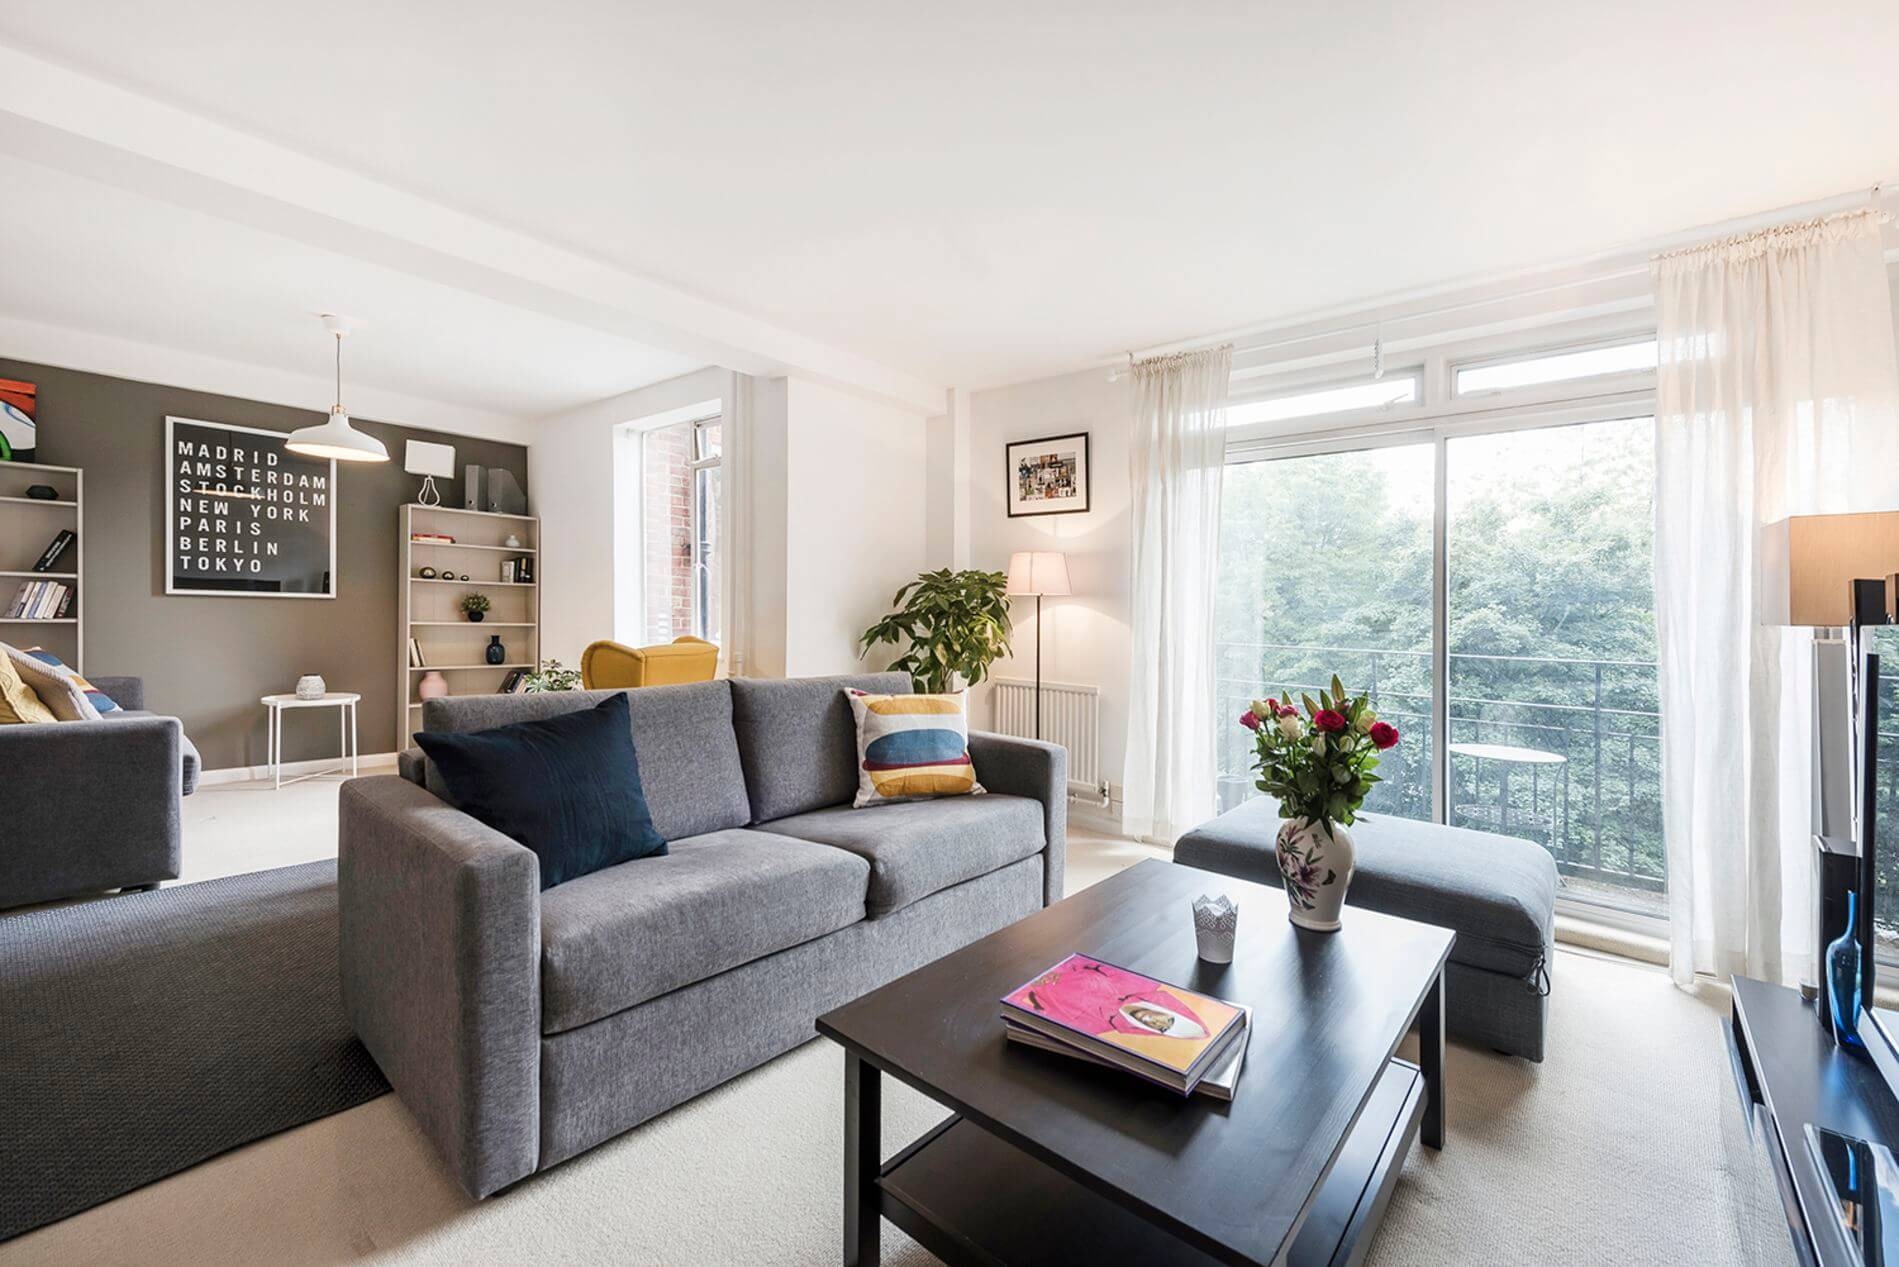 2 bedroom property to rent in London